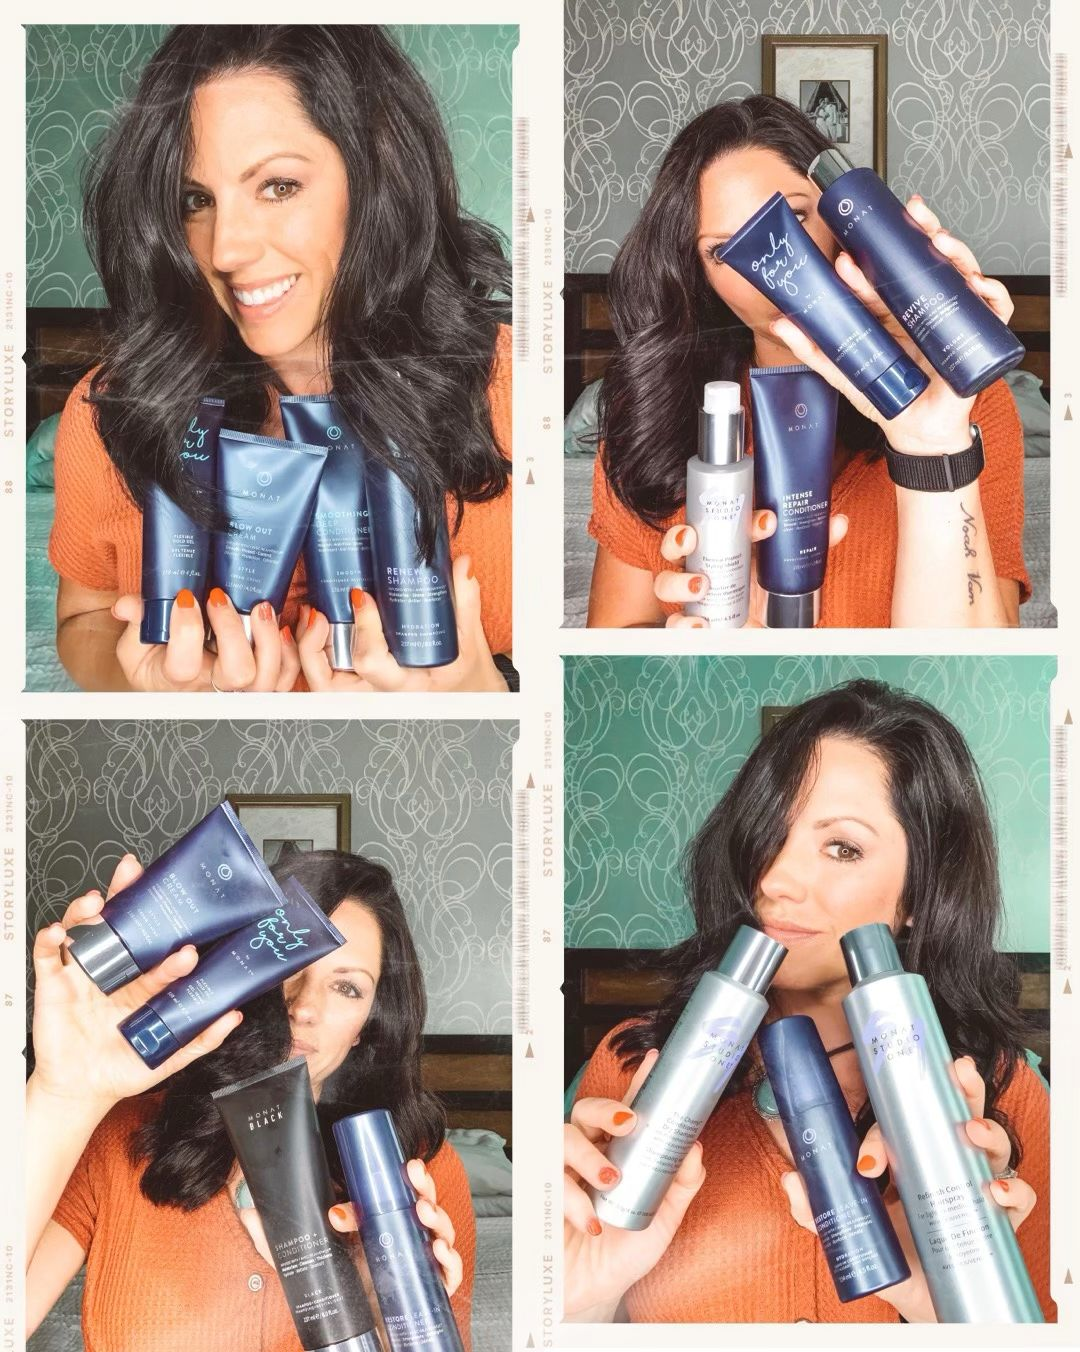 Buy any shampoo and any conditioner, add any styling